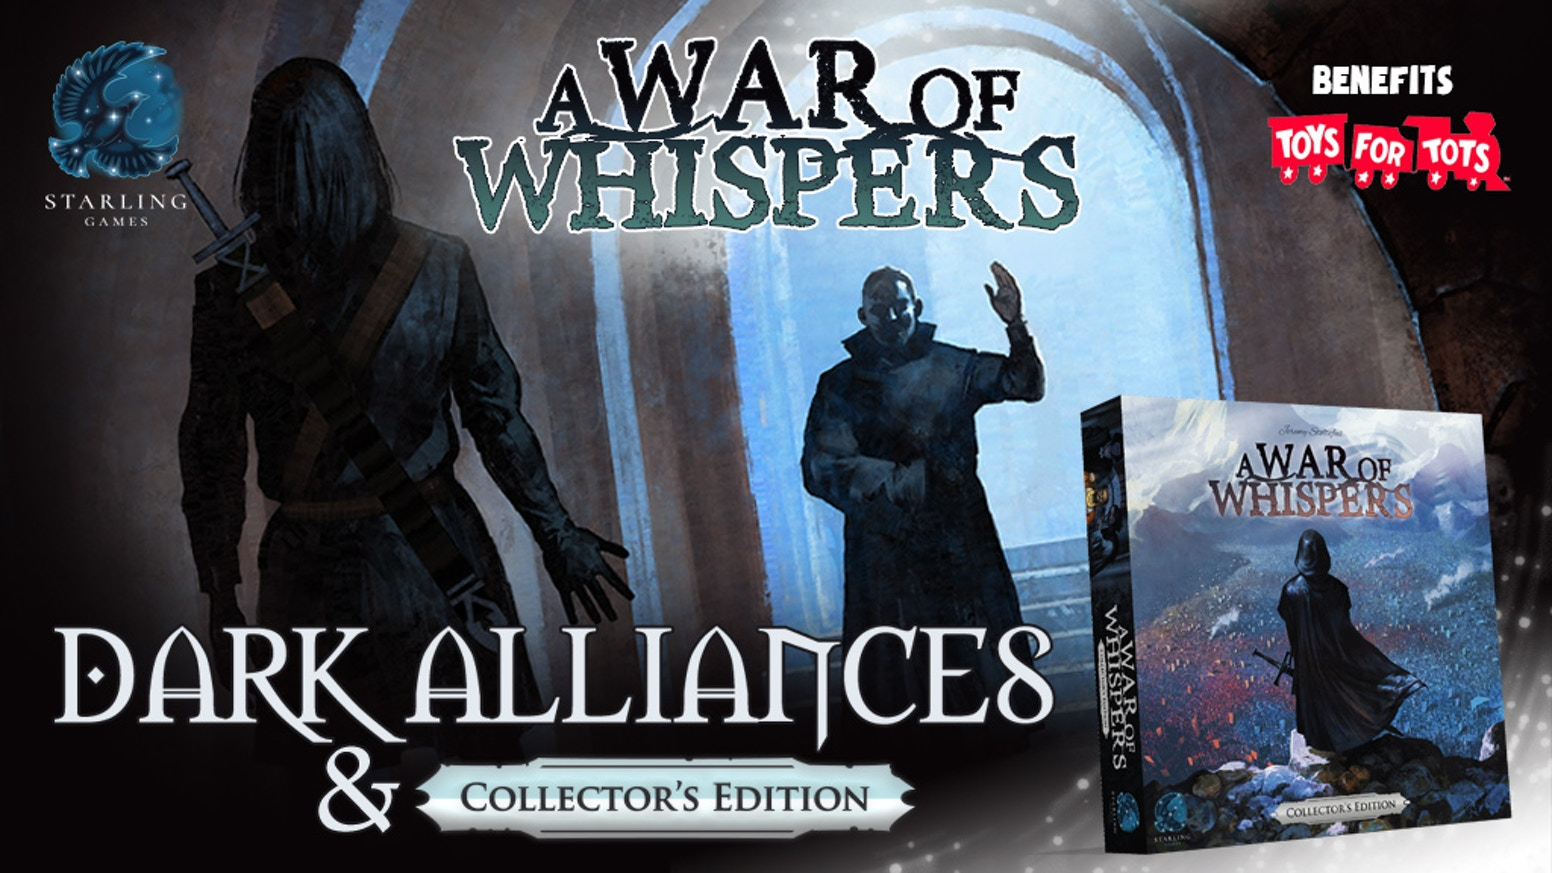 With Dark Alliances you can gain an advantage...for a price! Add to A War of Whispers or get the new Collector's Edition!